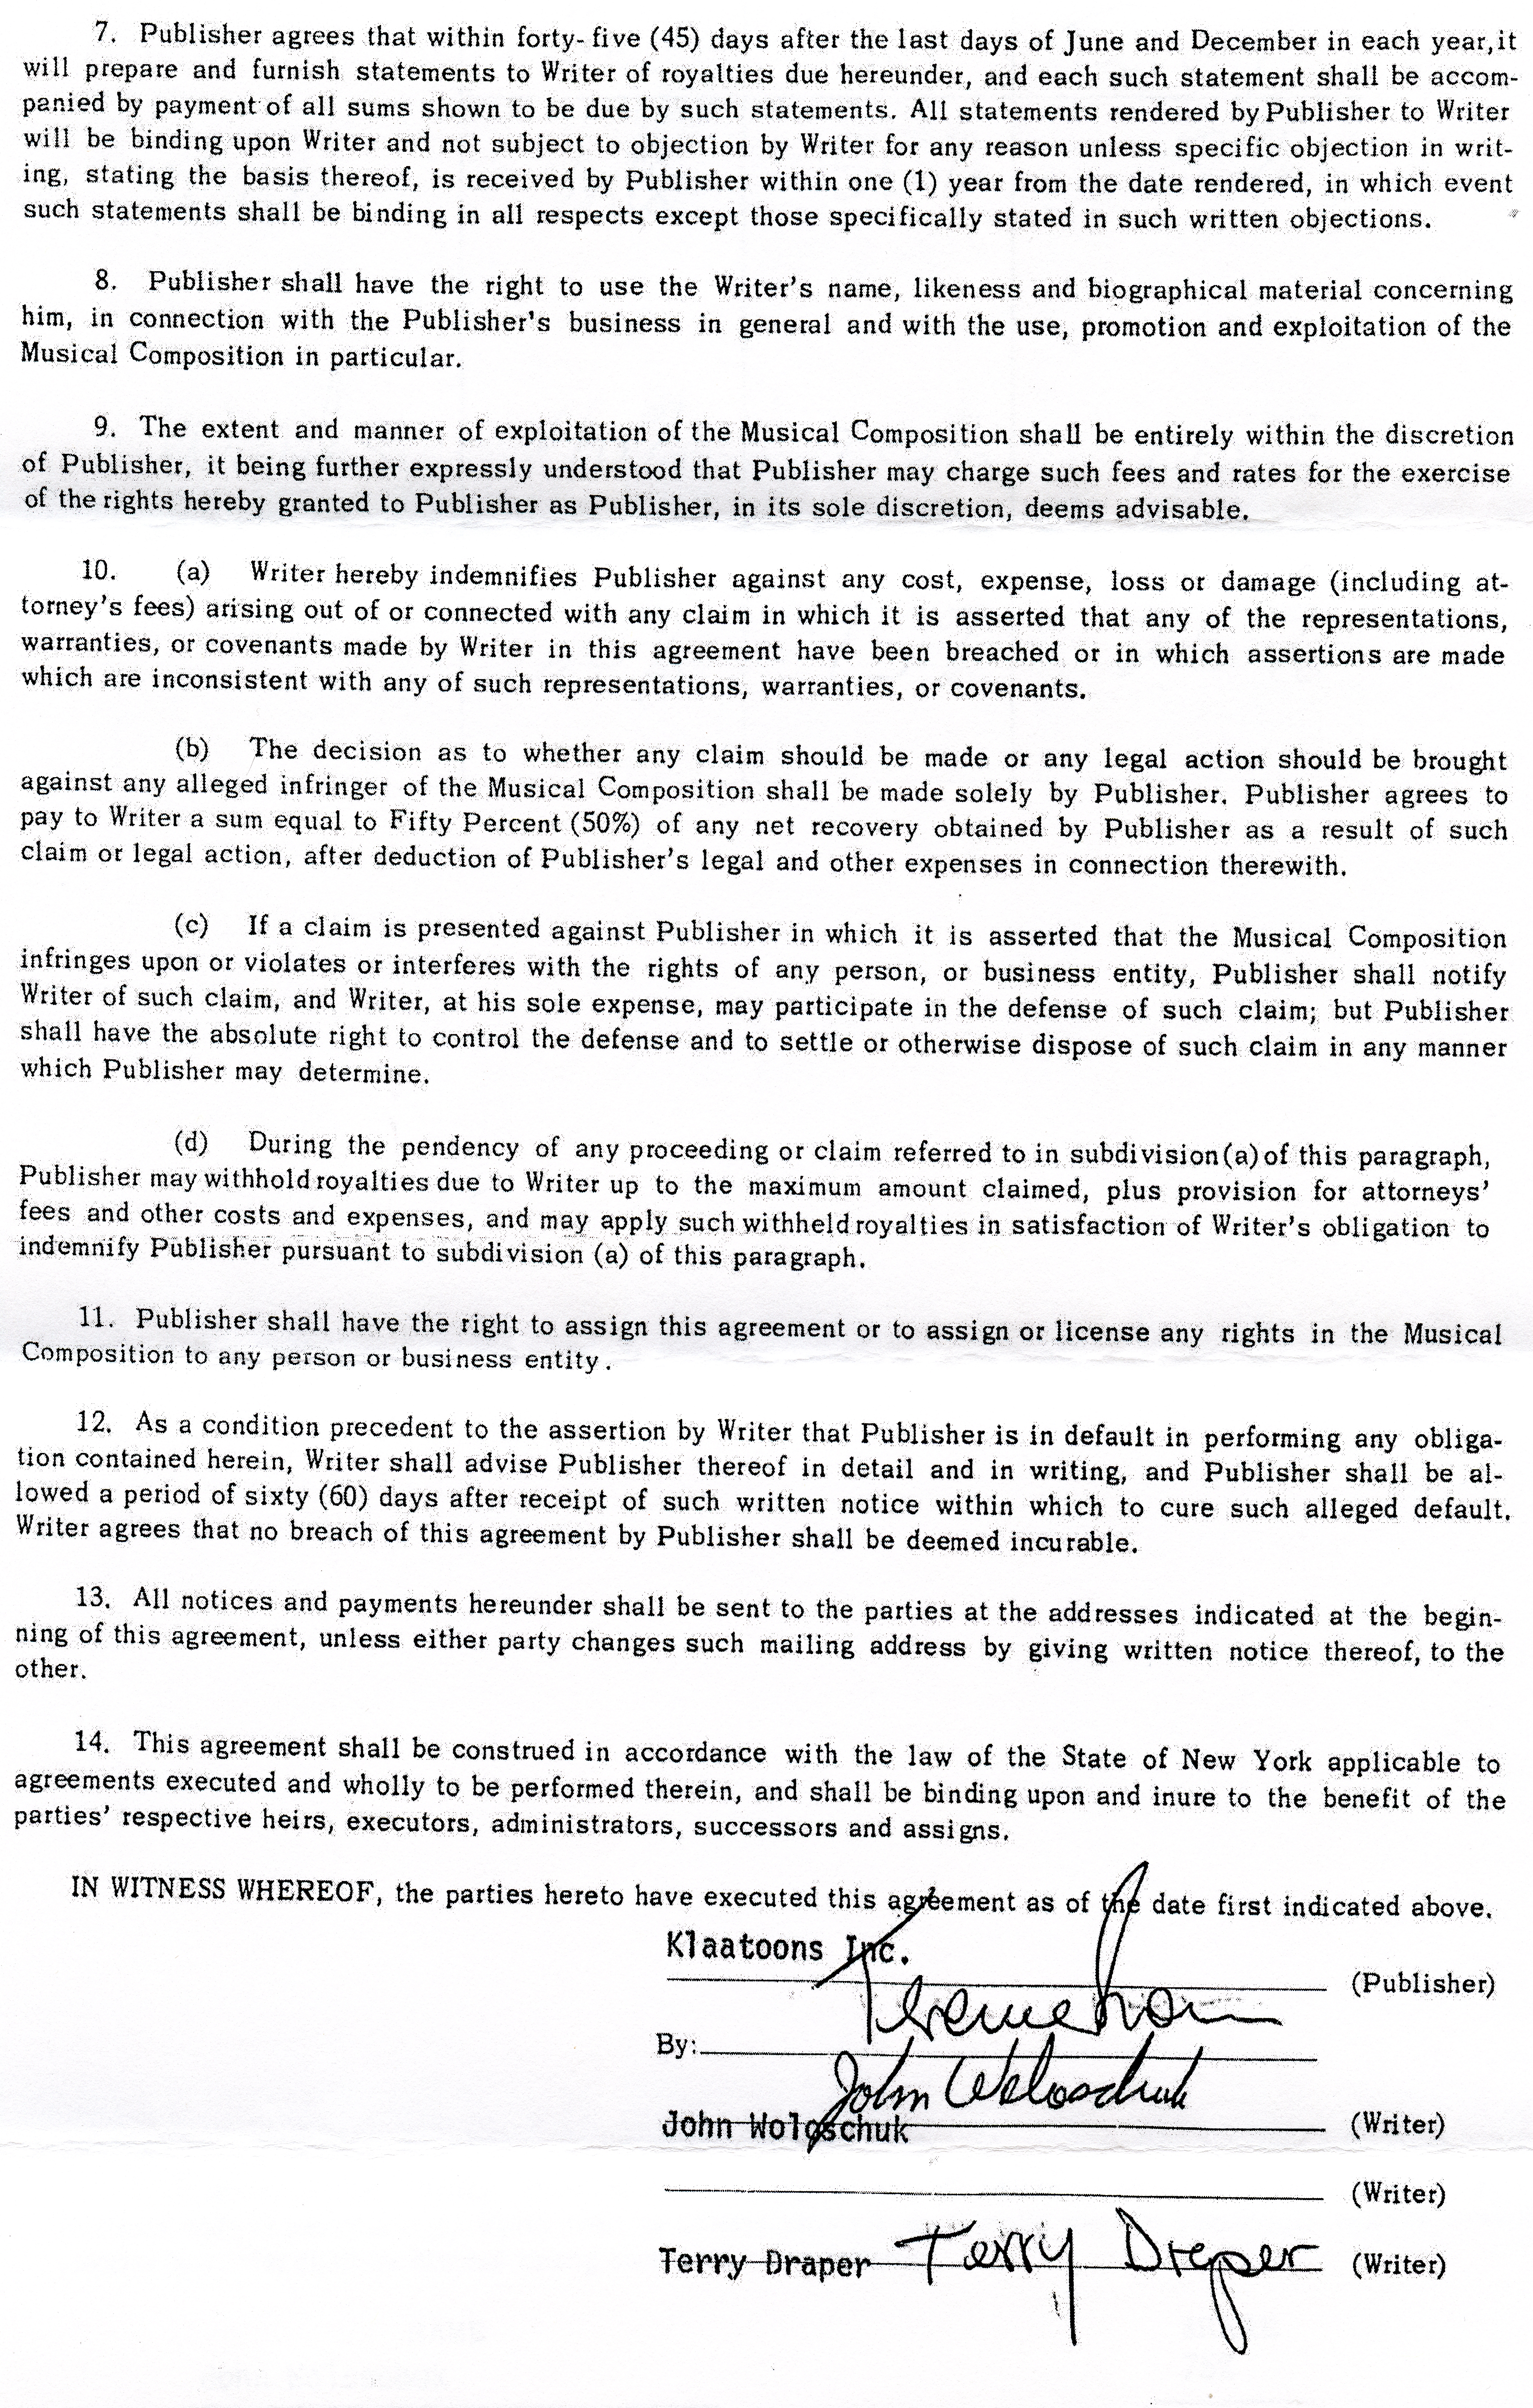 This is a scanned image of the second page of the songwriting contract for Calling Occupants.